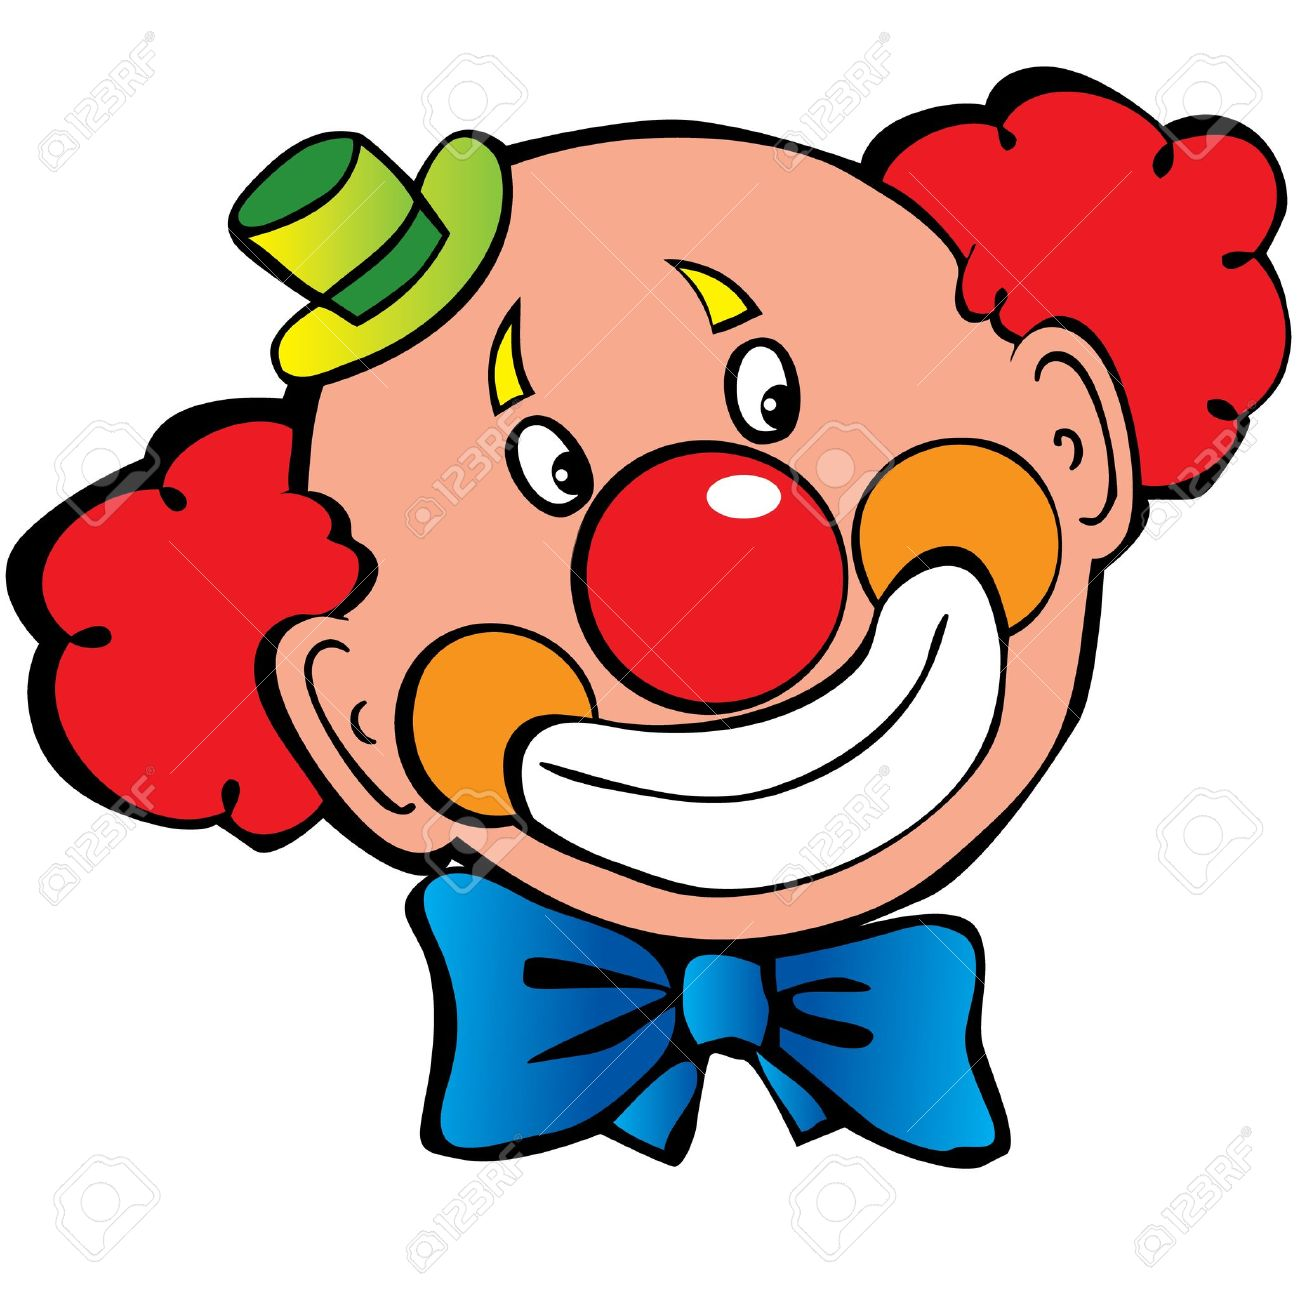 Image of clown face clipart 9 free clown clipart 1 page of